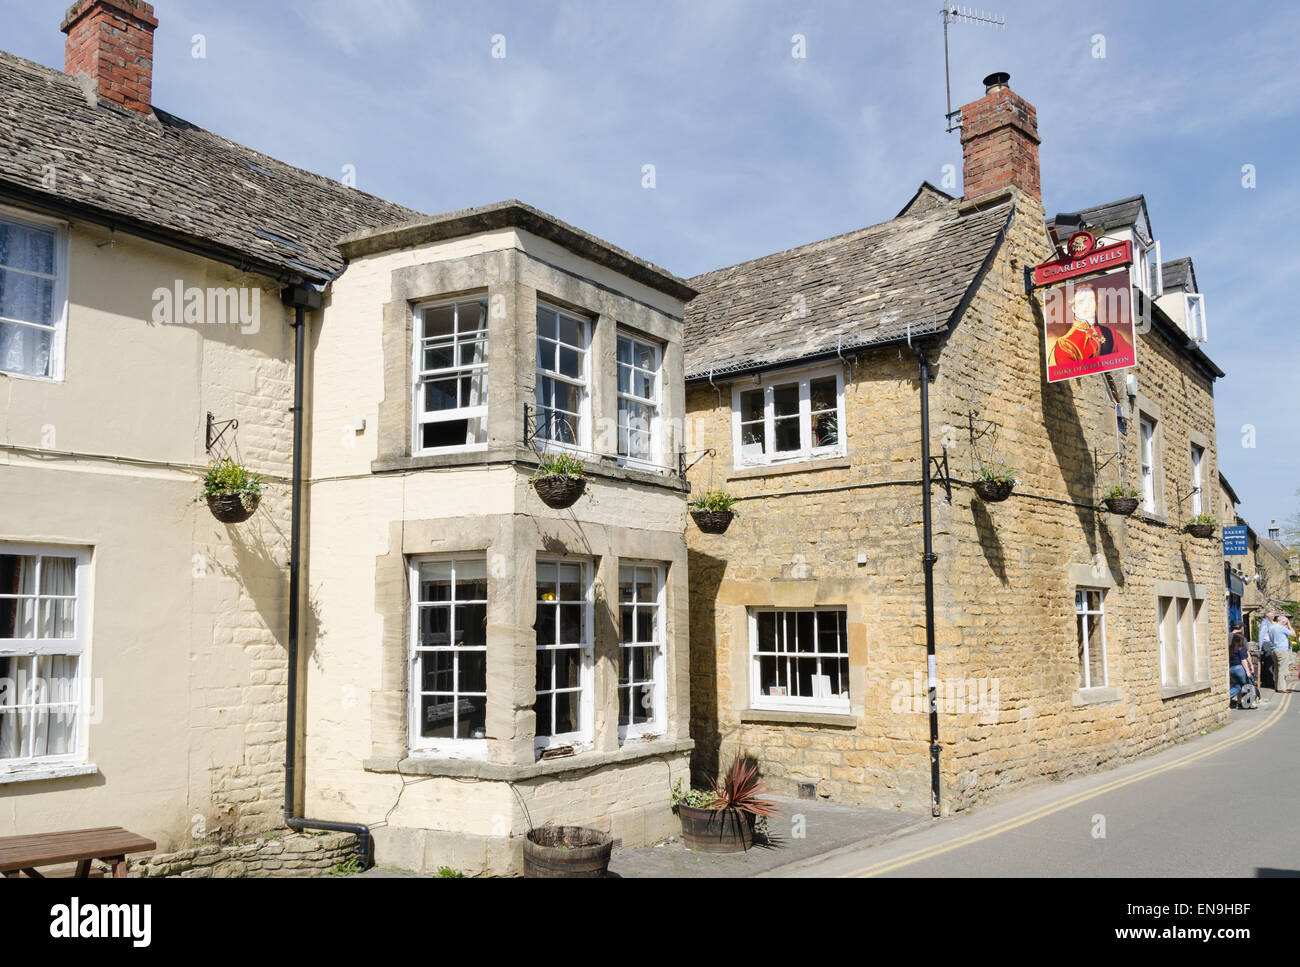 The Duke of Wellington public house in the Cotswold village of Bourton-on-the-Water - Stock Image